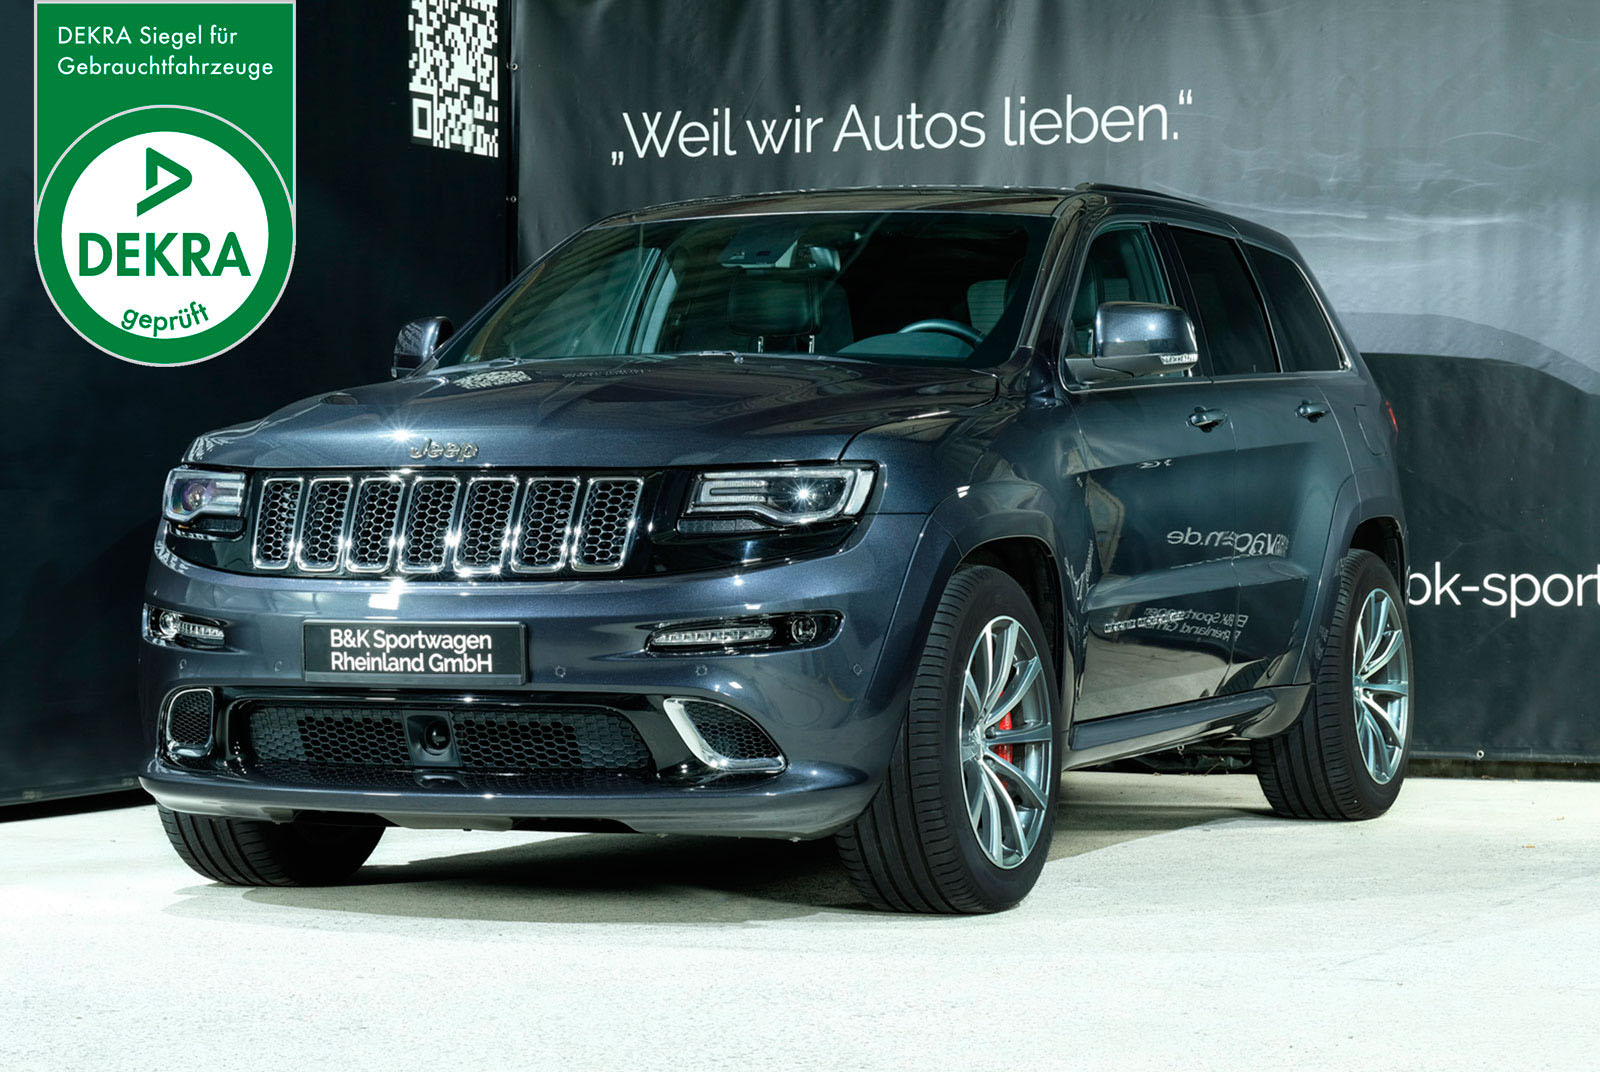 jeep grand cherokee srt b k sportwagen rheinland gmbh. Black Bedroom Furniture Sets. Home Design Ideas